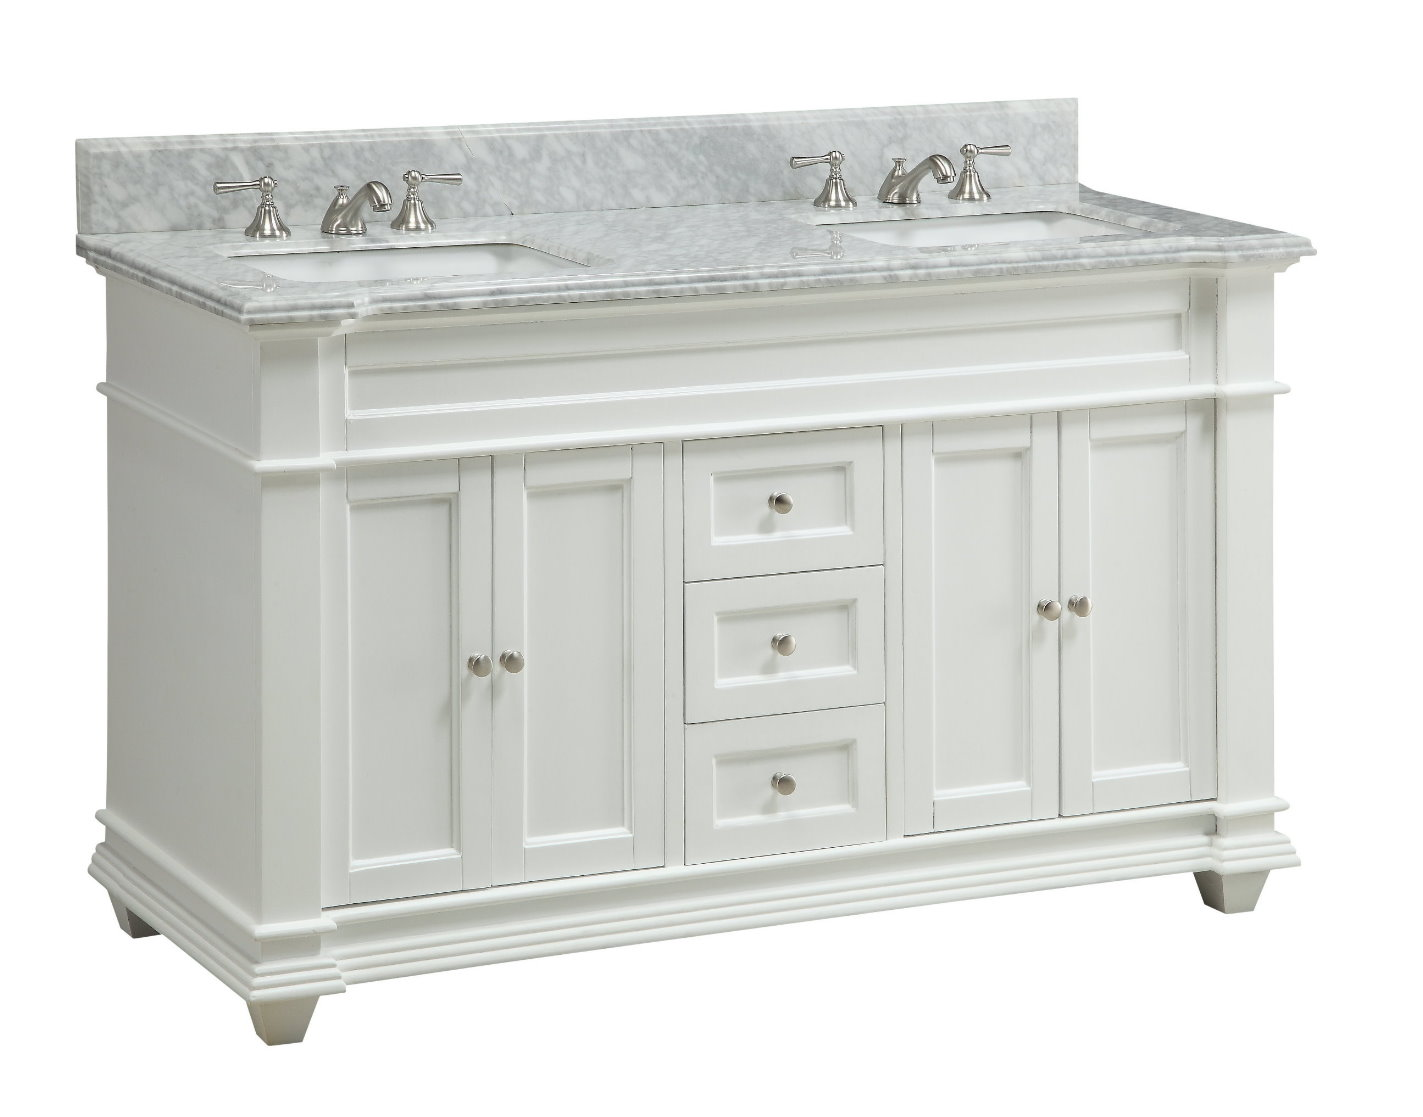 60 white bathroom vanity - 60 White Bathroom Vanity 31